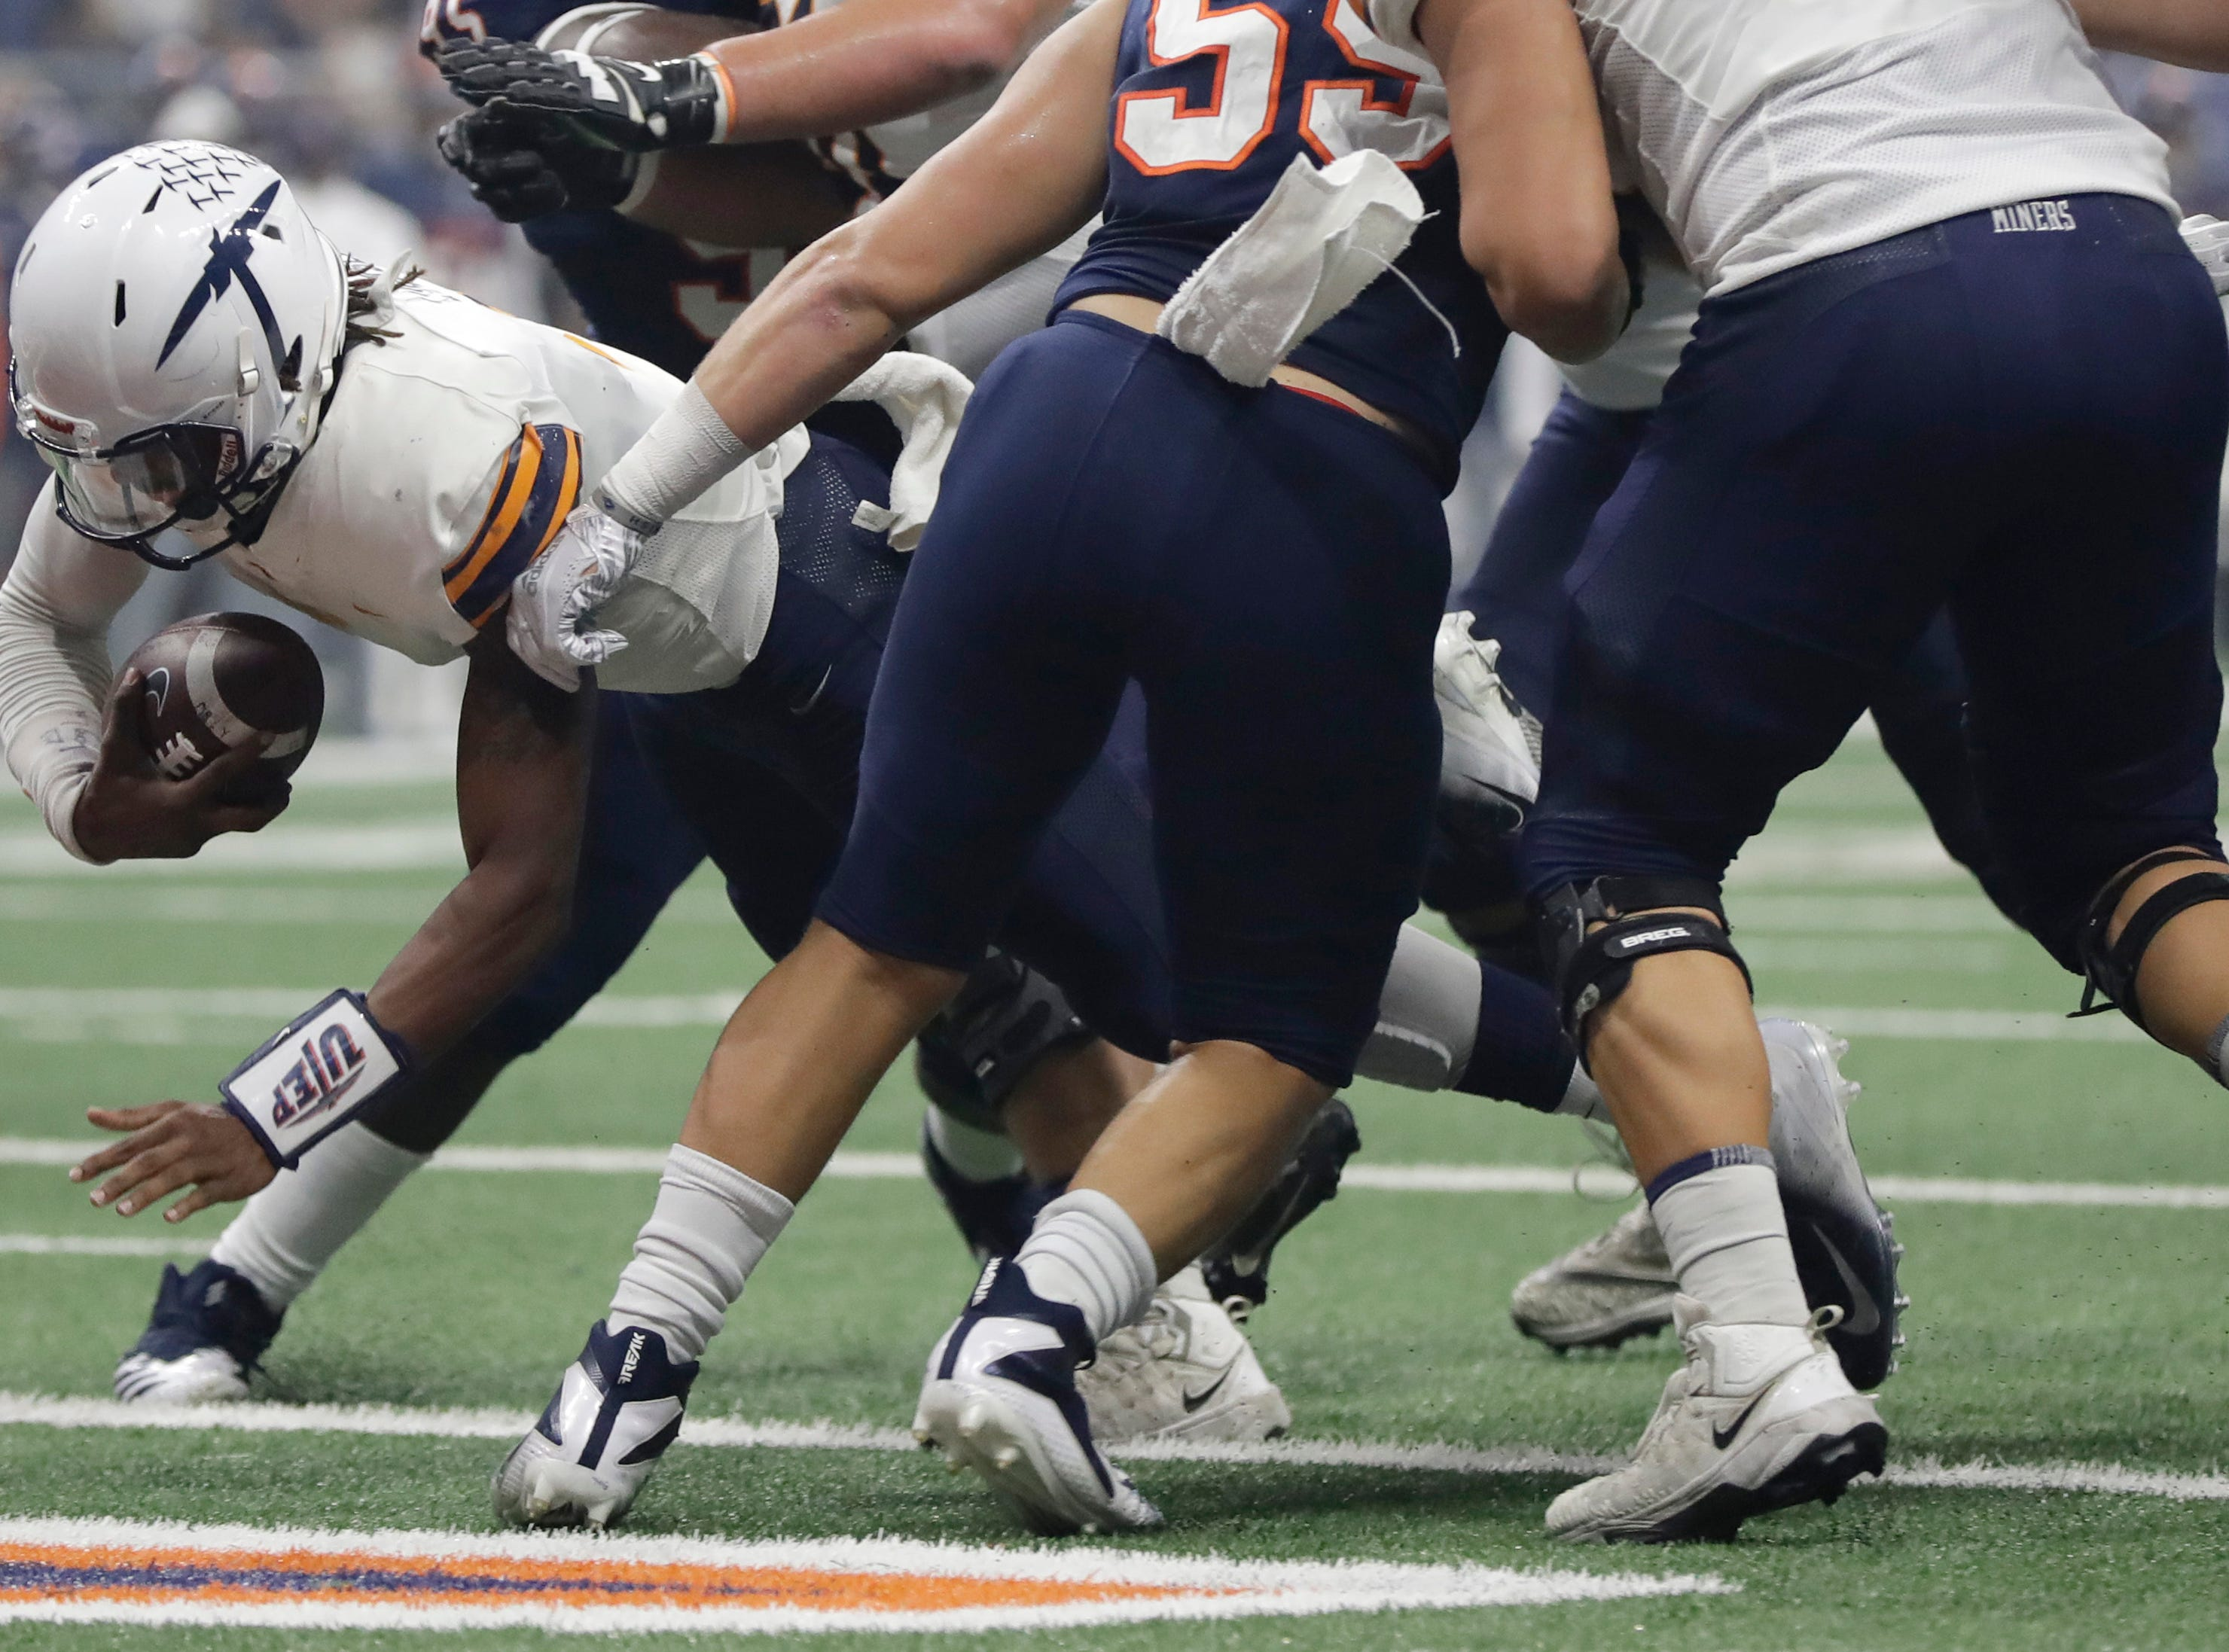 UTEP quarterback Kai Locksley (1) dives for a touchdown against UTSA during the first half of an NCAA college football game Saturday, Sept. 29, 2018, in San Antonio. (AP Photo/Eric Gay)